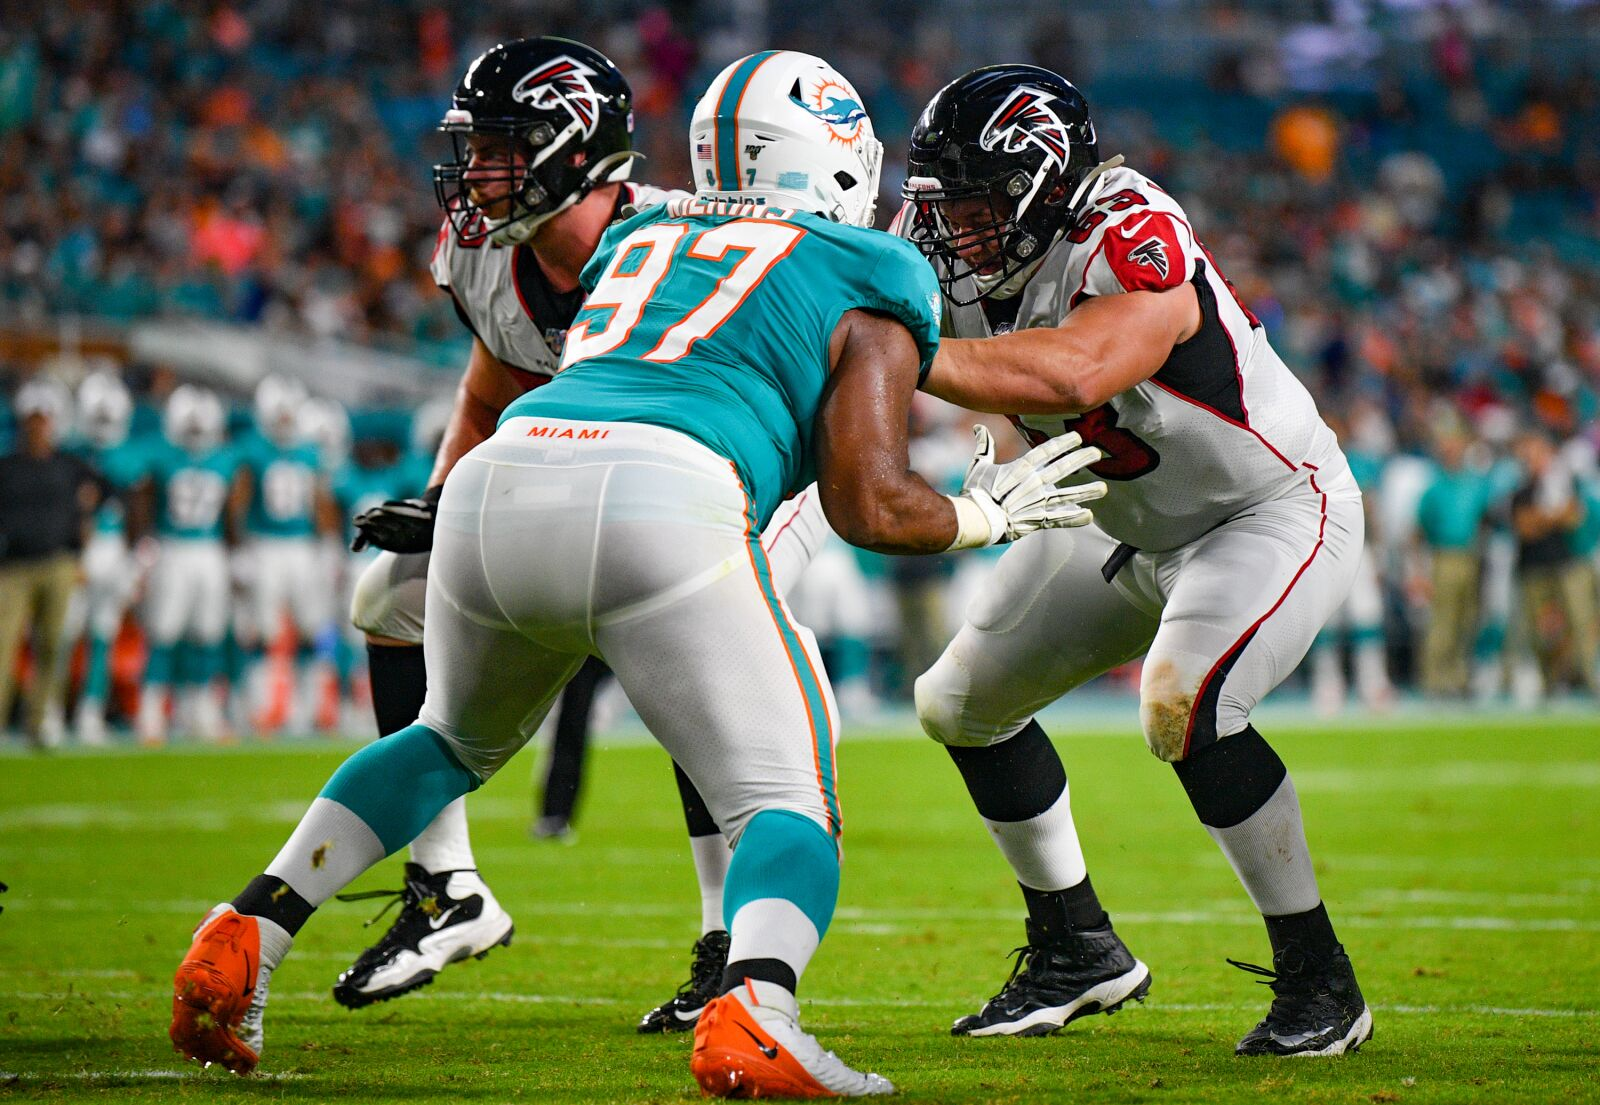 Christian Wilkins is having fun while making and impact for Miami Dolphins